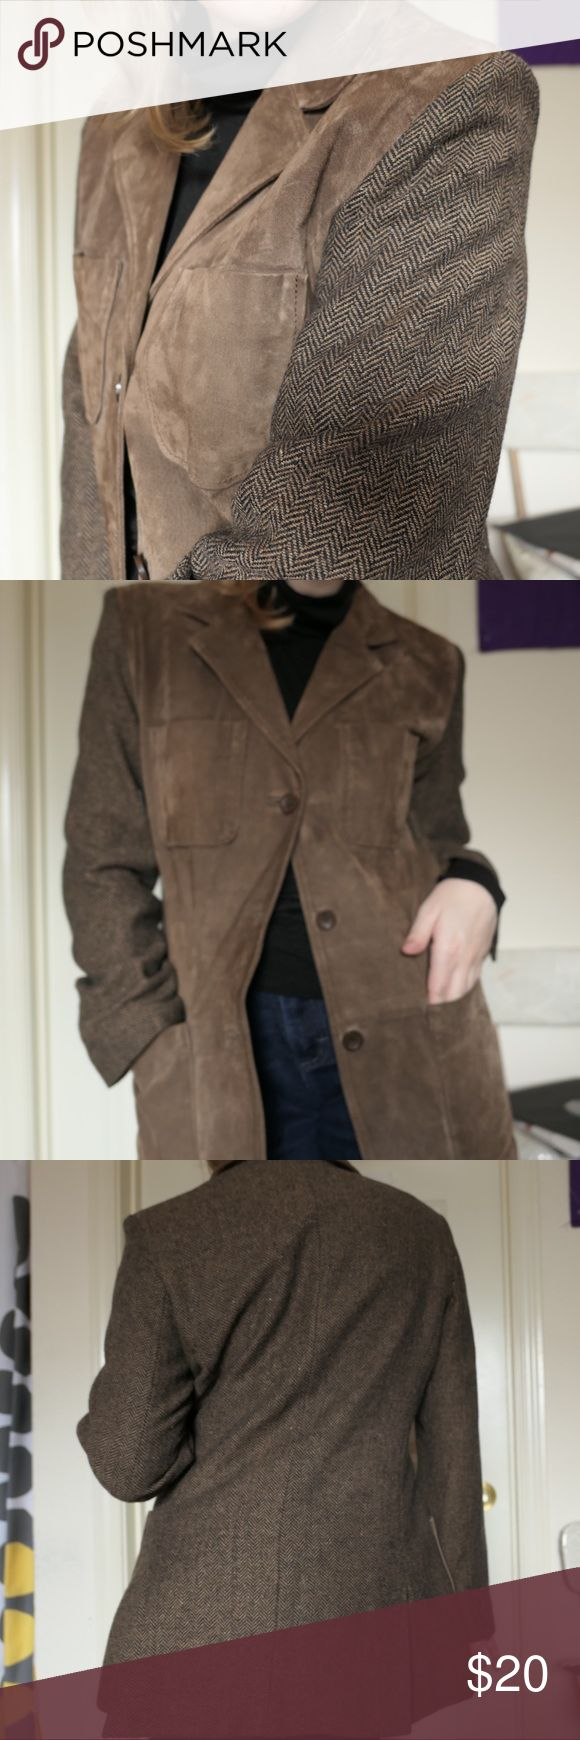 Leather and wool blend herringbone jacket Leather and wool-blend herringbone jacket. An interesting piece.   In good condition. Labeled as a size small. Fits a size small.   Tags: #herringbone #wool #leather #blazer #jacket #menswear Jackets & Coats